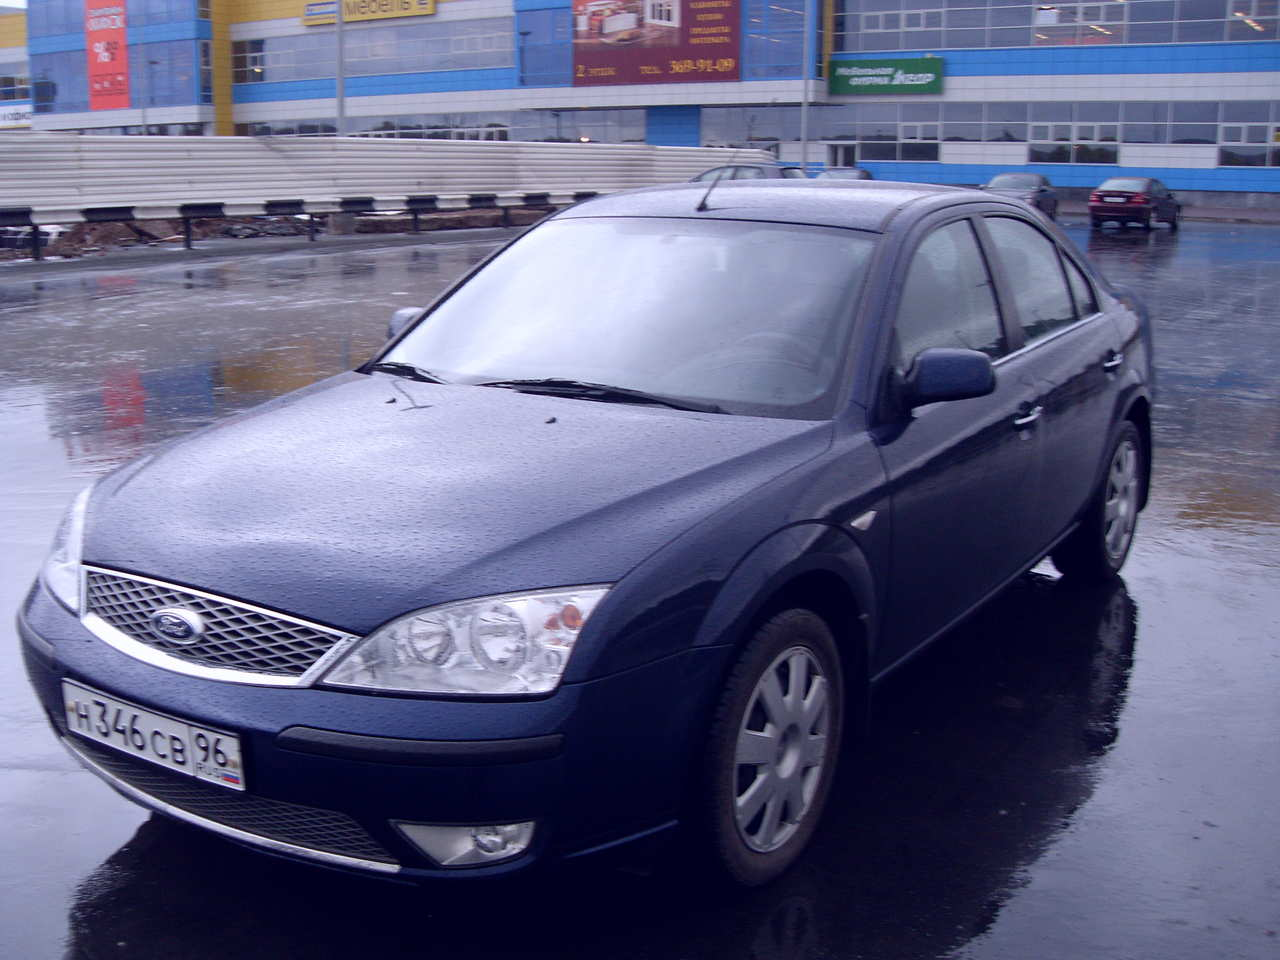 2006 ford mondeo photos 1 8 gasoline ff manual for sale. Black Bedroom Furniture Sets. Home Design Ideas